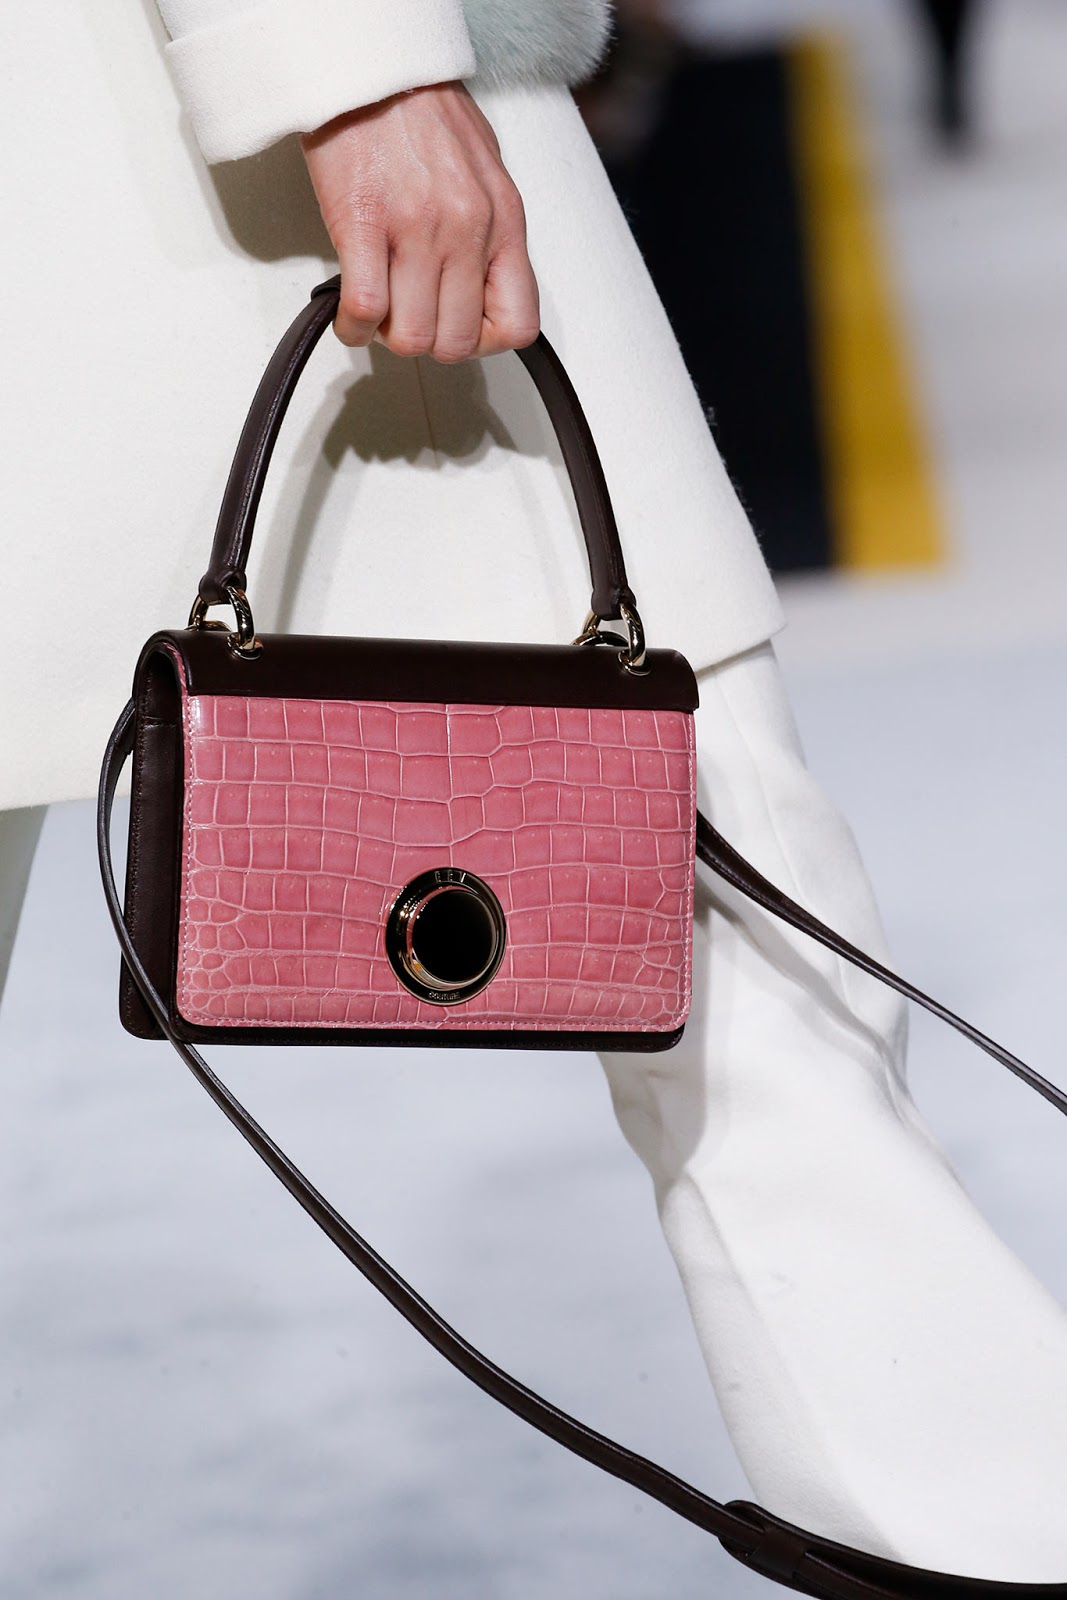 Fall 2015 accessories trend report / best bags / investment bags / crocodile accessories trend at Giambattista Valli Fall/Winter 2015 via fashionedbylove.co.uk, british fashion blog